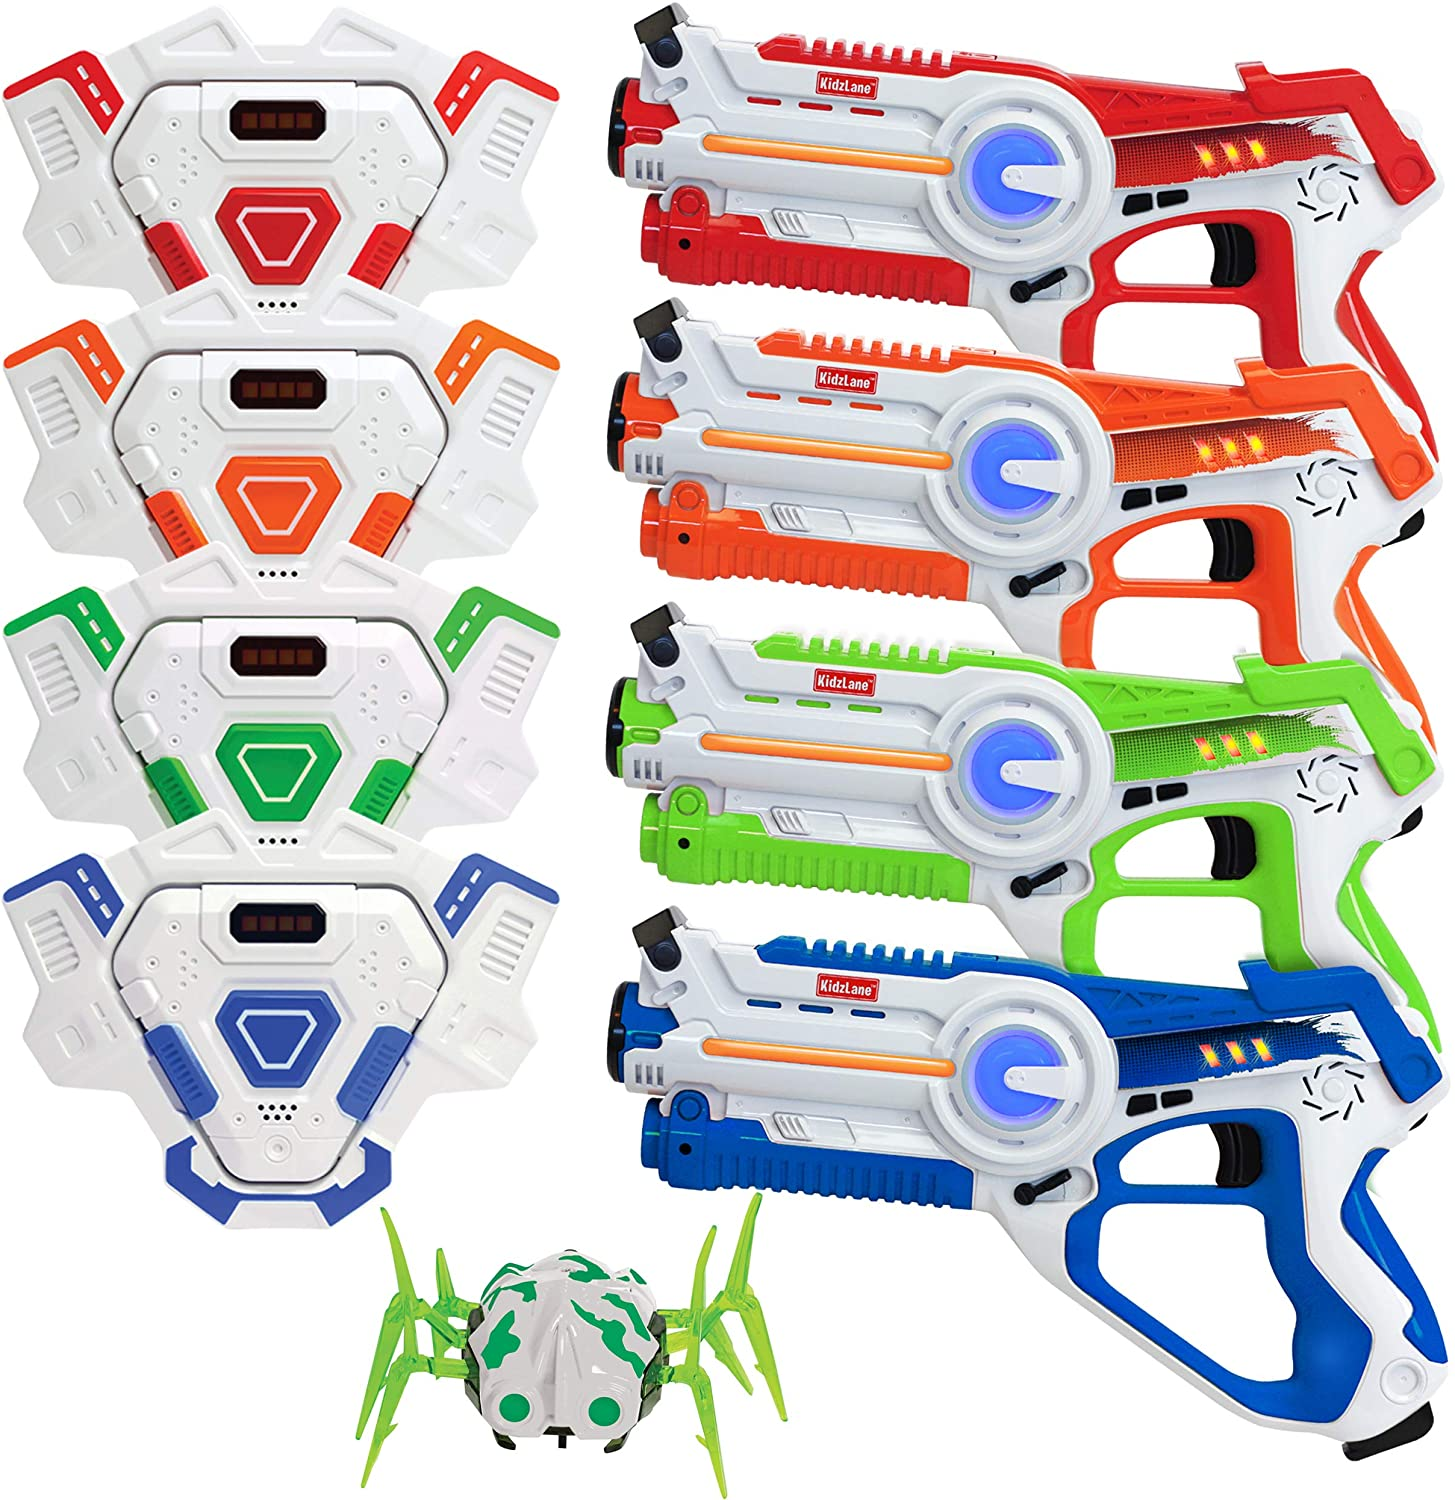 Kidzlane Laser tag Set – Lazer Tag Set of 4 with Vest and Laser Tag Spider Target – Laser Tag Game for Kids Boys Age 8+ - Indoor or Outdoor Fun Toy for Kids, Teens Boys and Girls